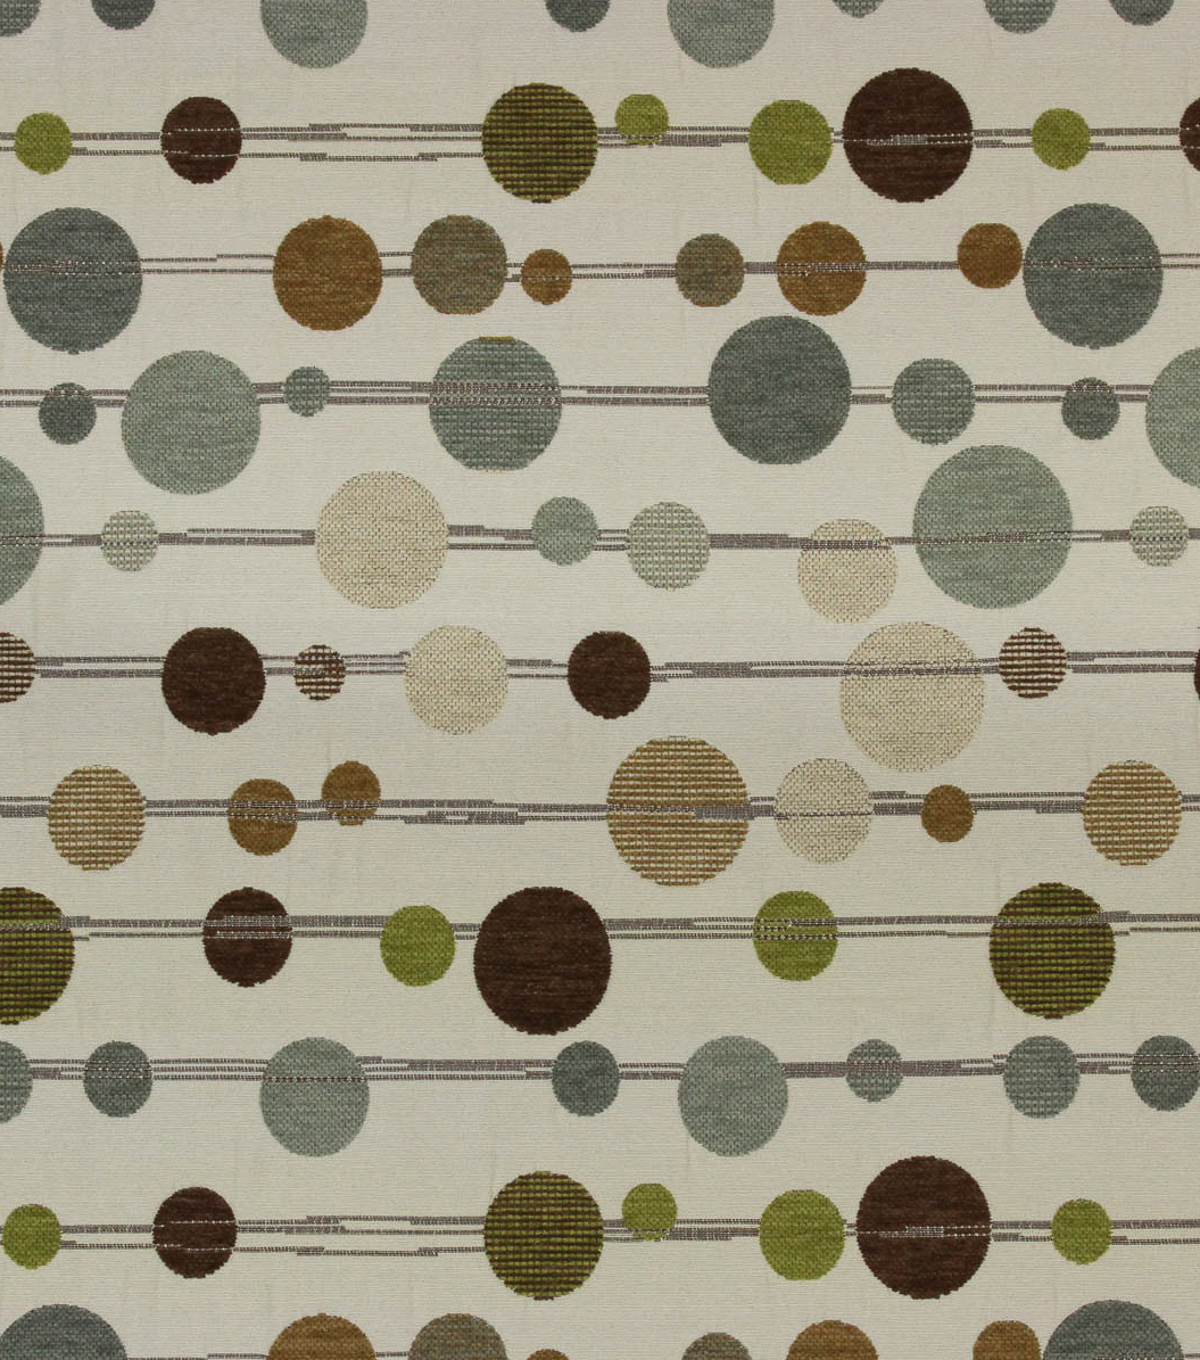 Richloom Studio Multi-Purpose Decor Fabric 54\u0022-Himes/Bermuda